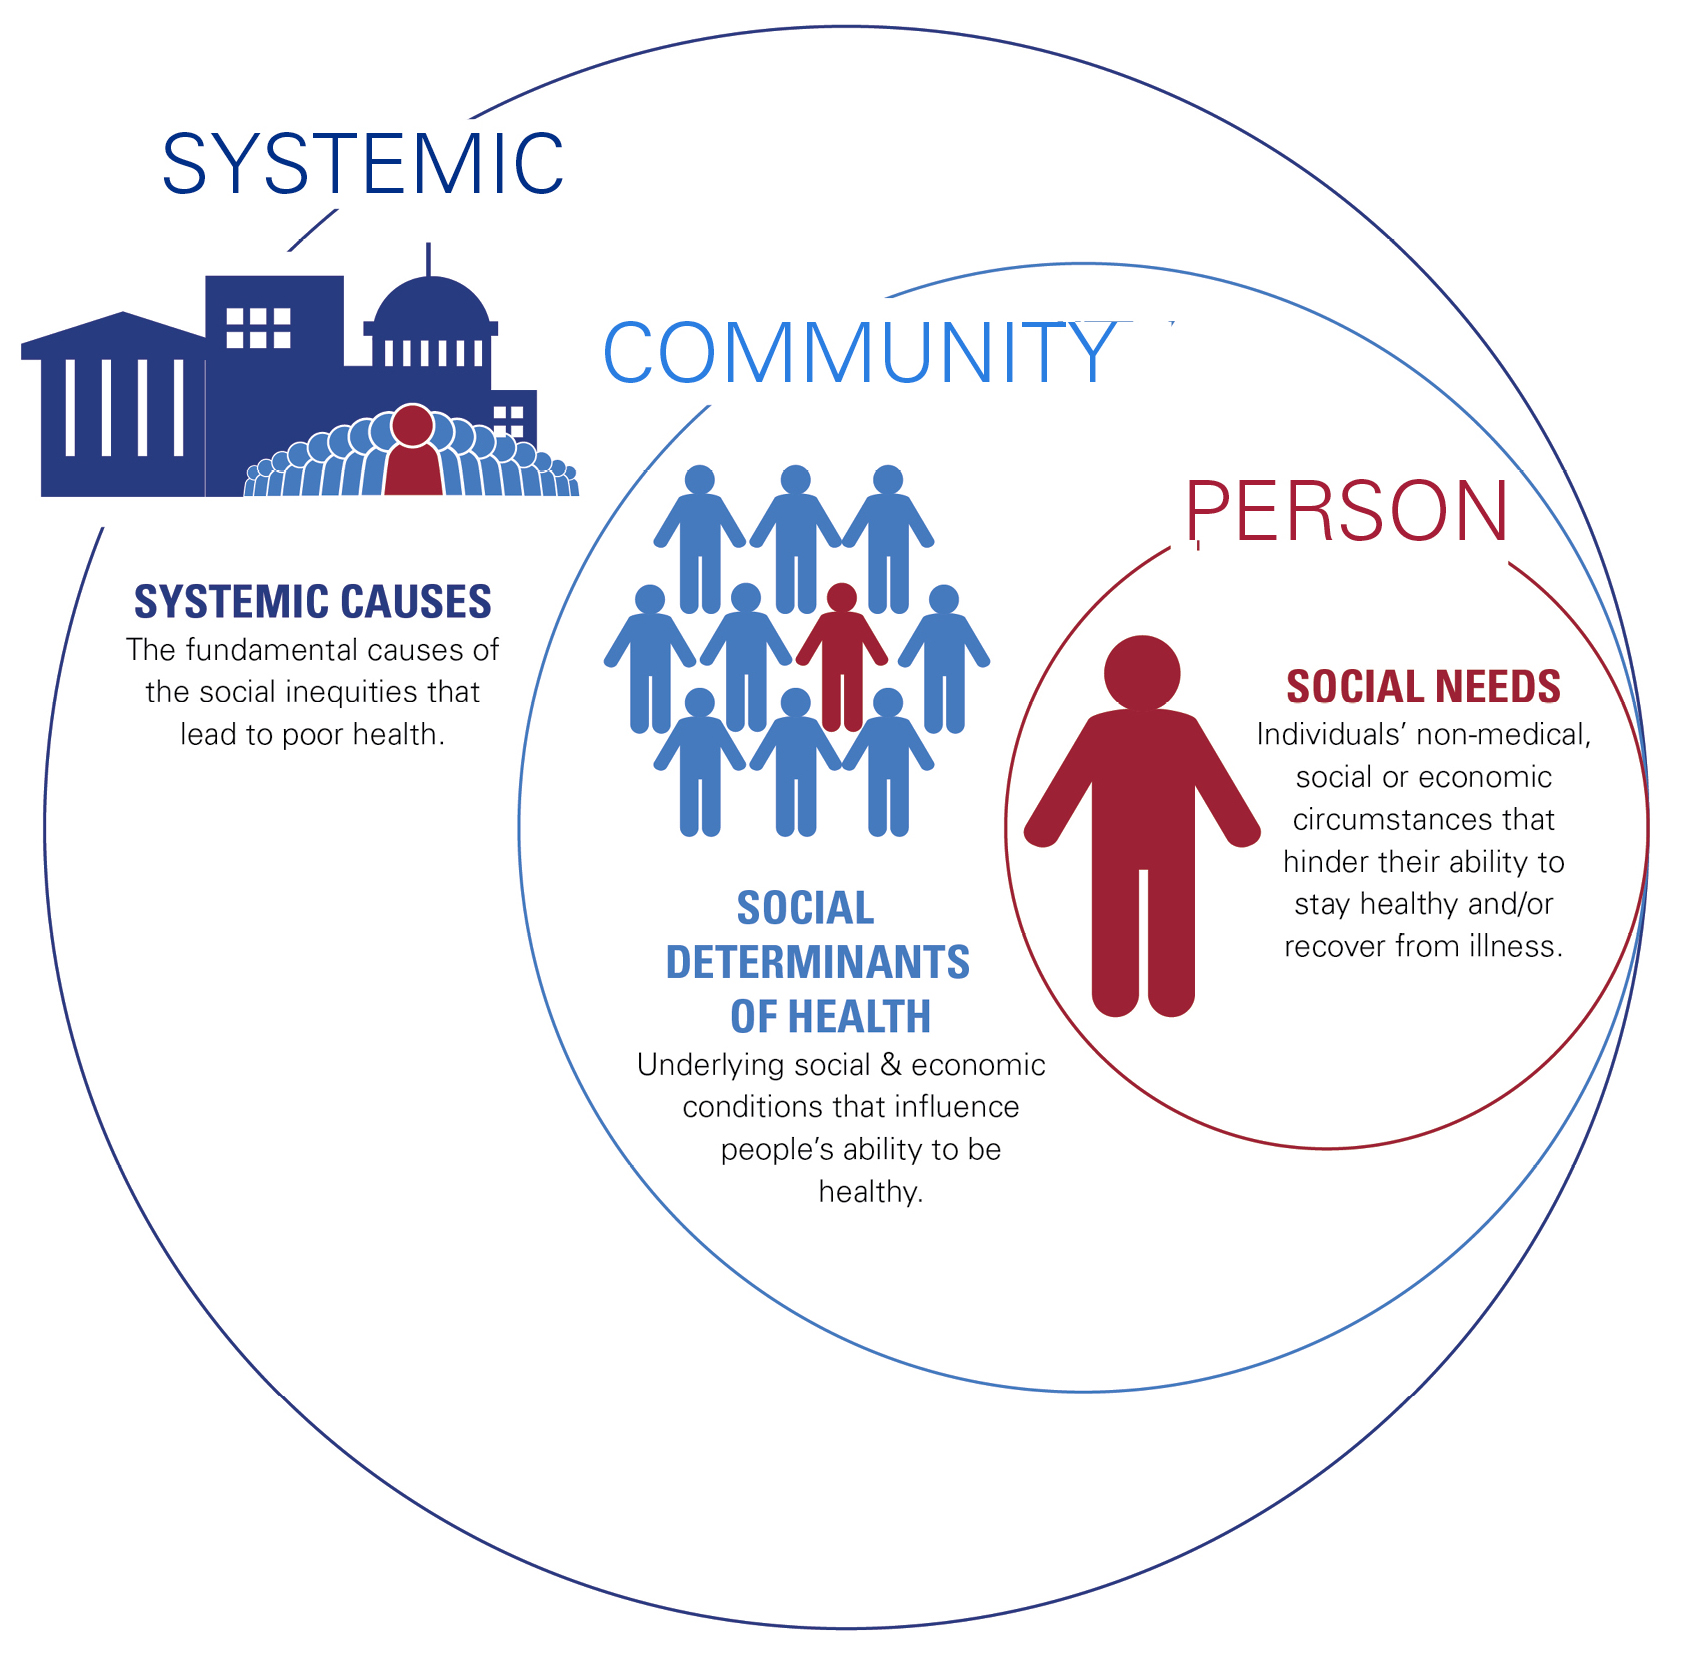 Societal Factors that Influence Health: A Framework for Hospitals. Three circles of different sizes with the small circle inside the medium circle, which are both inside the large circle. The large circle is labeled Systemic. Systemic Causes: The fundamental causes of the social inequities that lead to poor health. The medium circle is labeled Community. Social Determinants of Health: Underlying social and economic conditions that influence people's ability to be healthy. The small circle is labeled Person. Social Needs: Individuals' non-medical, social or economic circumstances that hinder their ability to stay healthy and/or recover from illness.